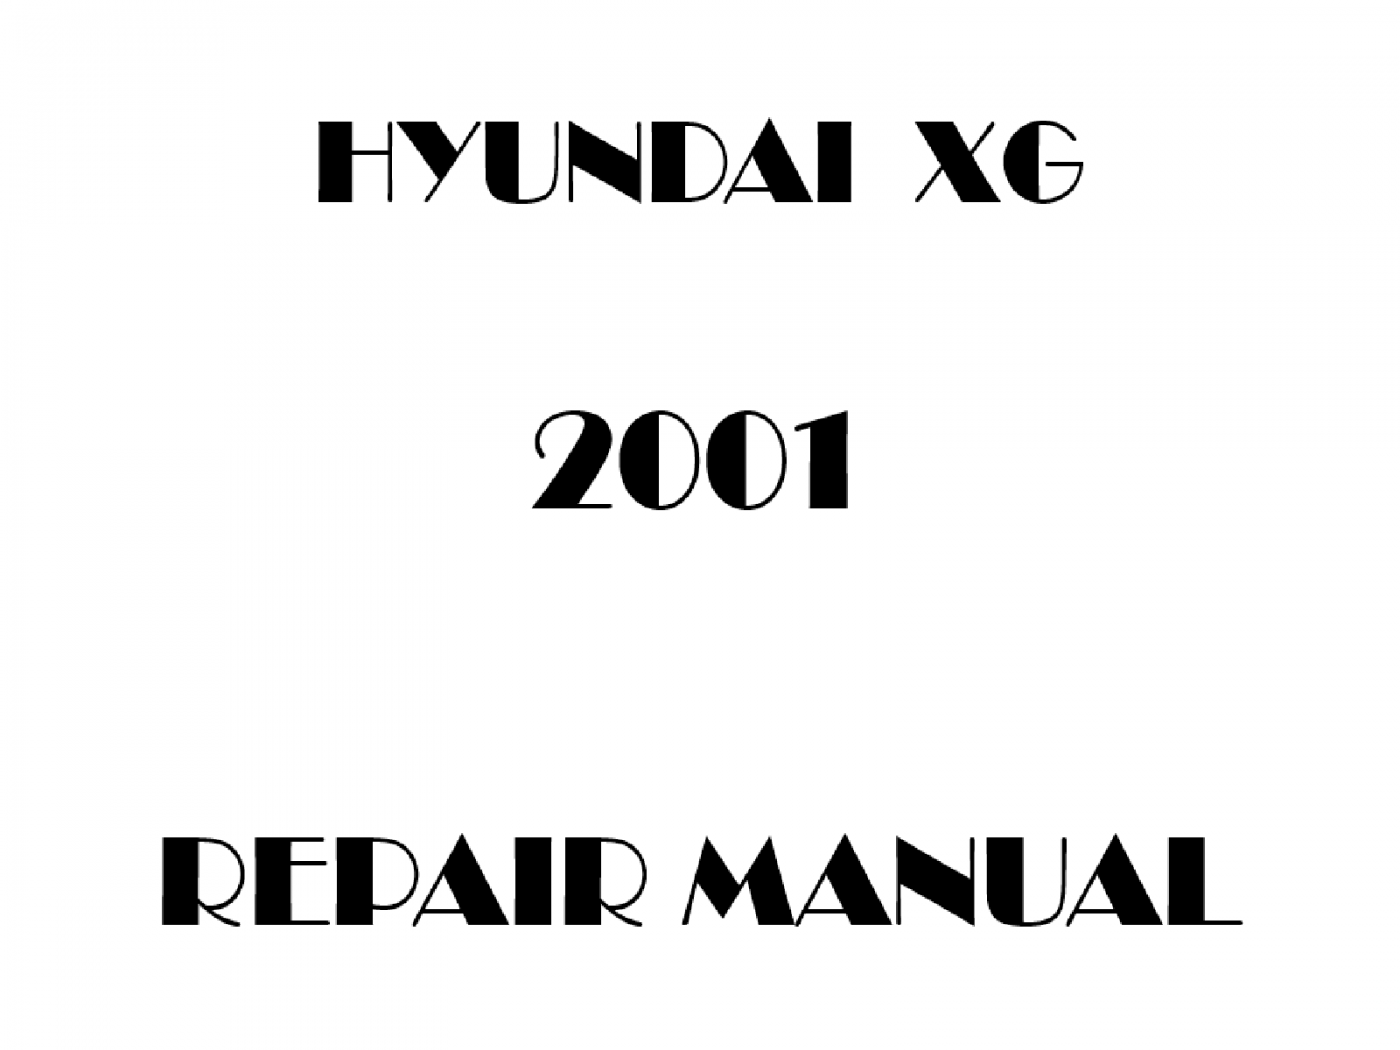 2001 Hyundai XG repair manual